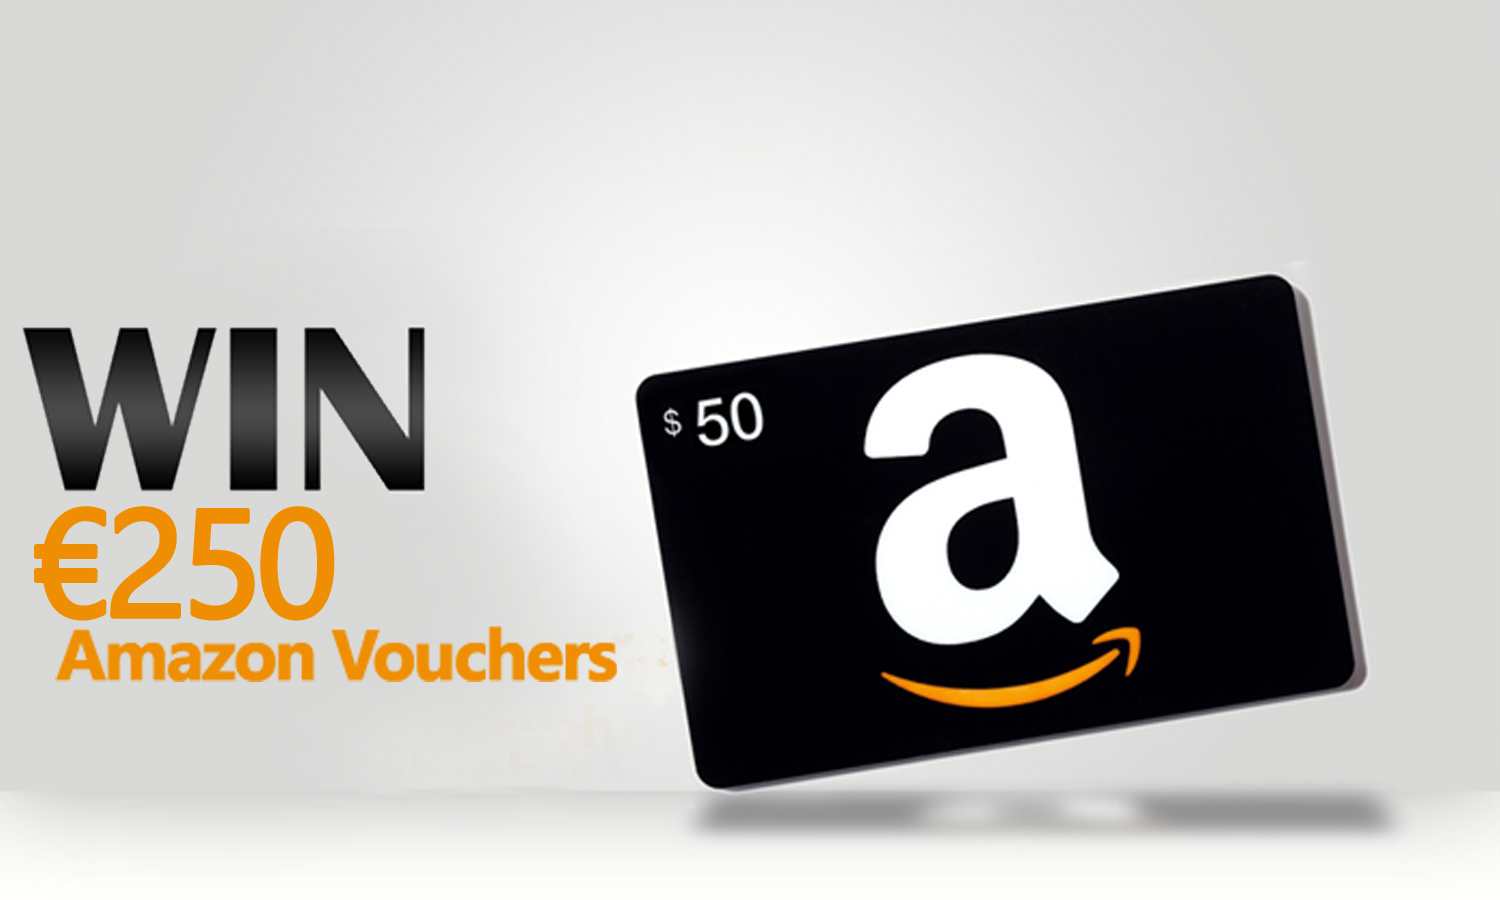 Win €250 Amazon Vouchers